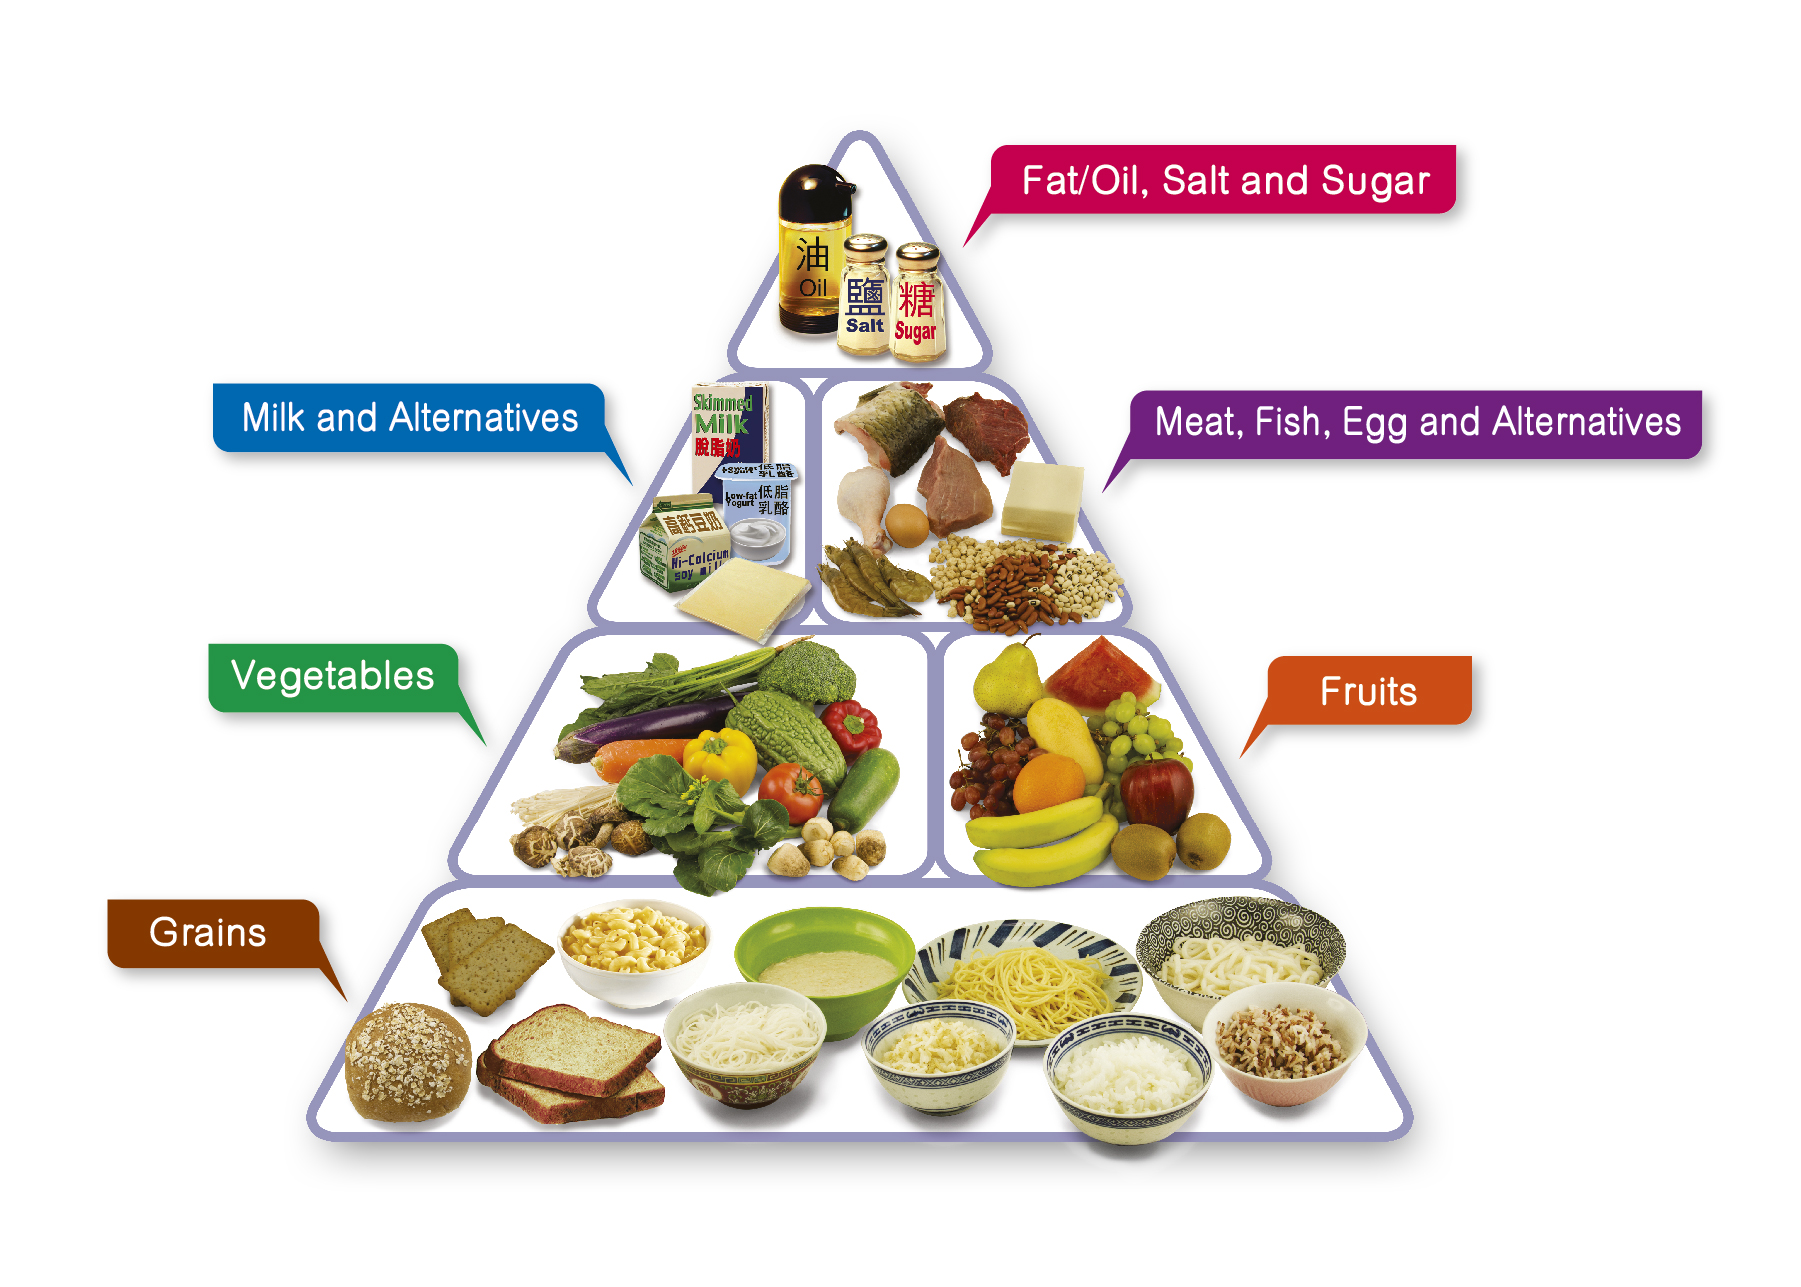 A food pyramid depicting a balanced diet.